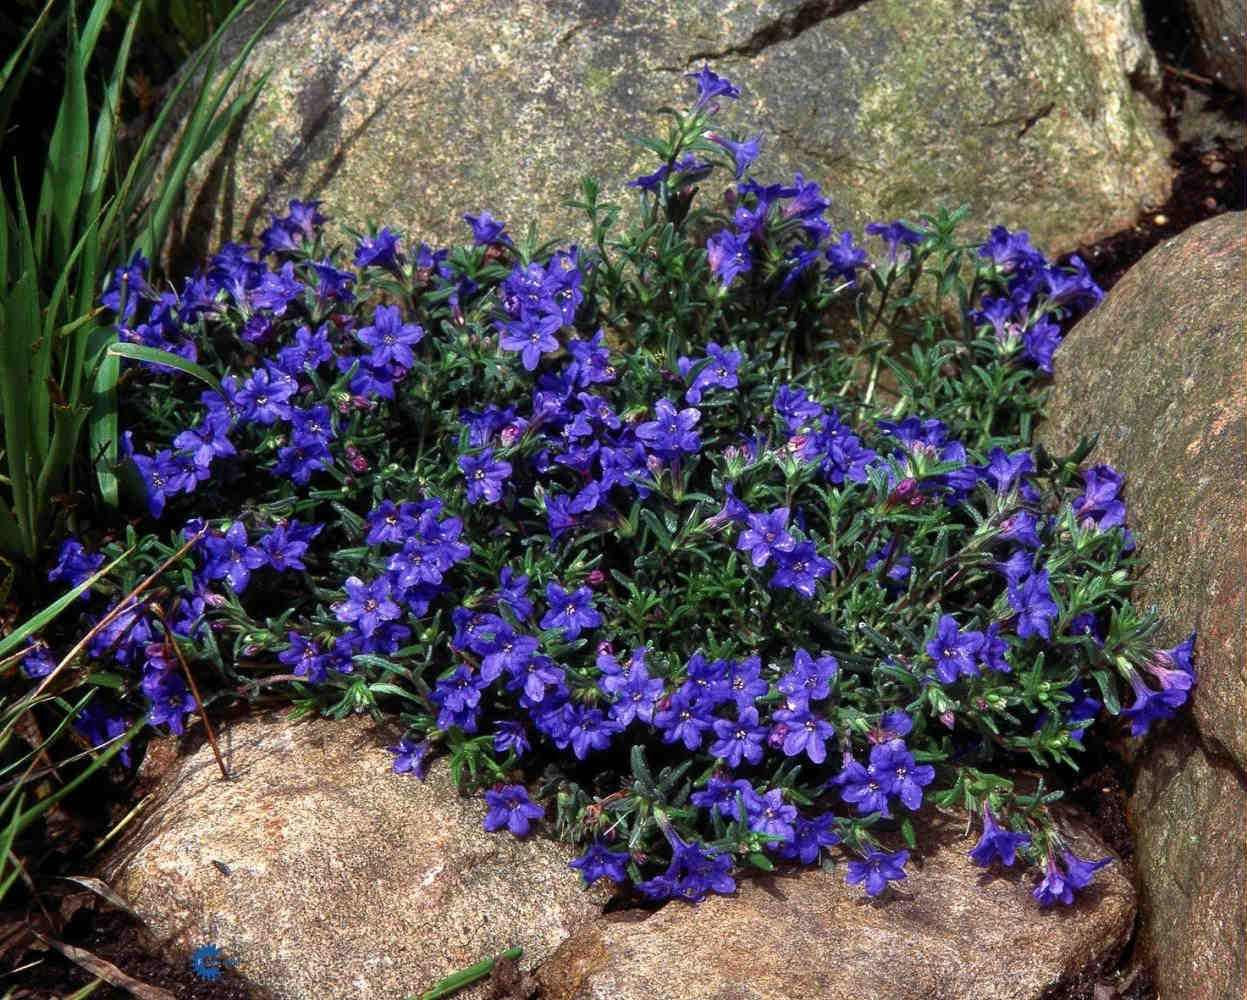 Lithodora Are Evergreen Shrubs Or Sub With 5 Lobed Blue White